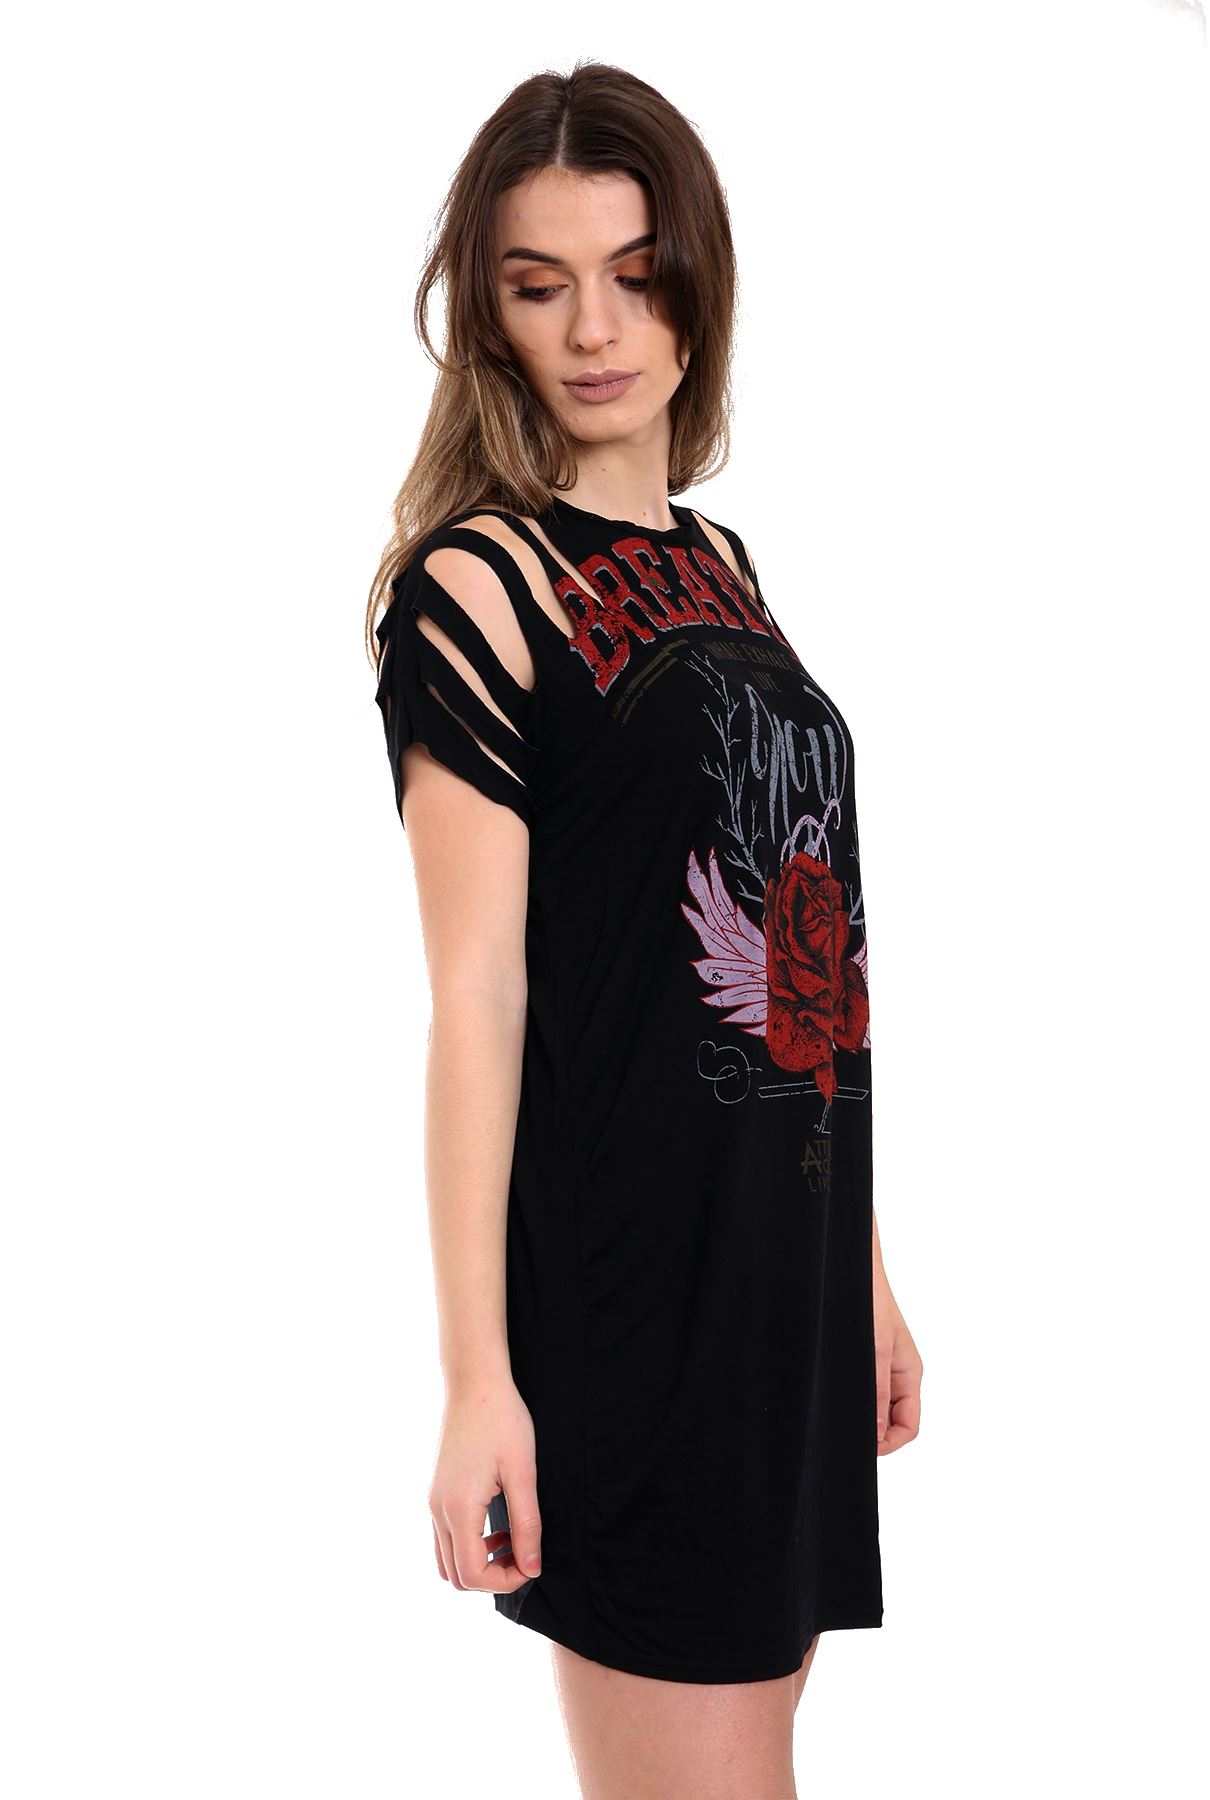 Black t shirt dress ebay - Womens Ladies Laser Cut Ripped Distress Floral Rose